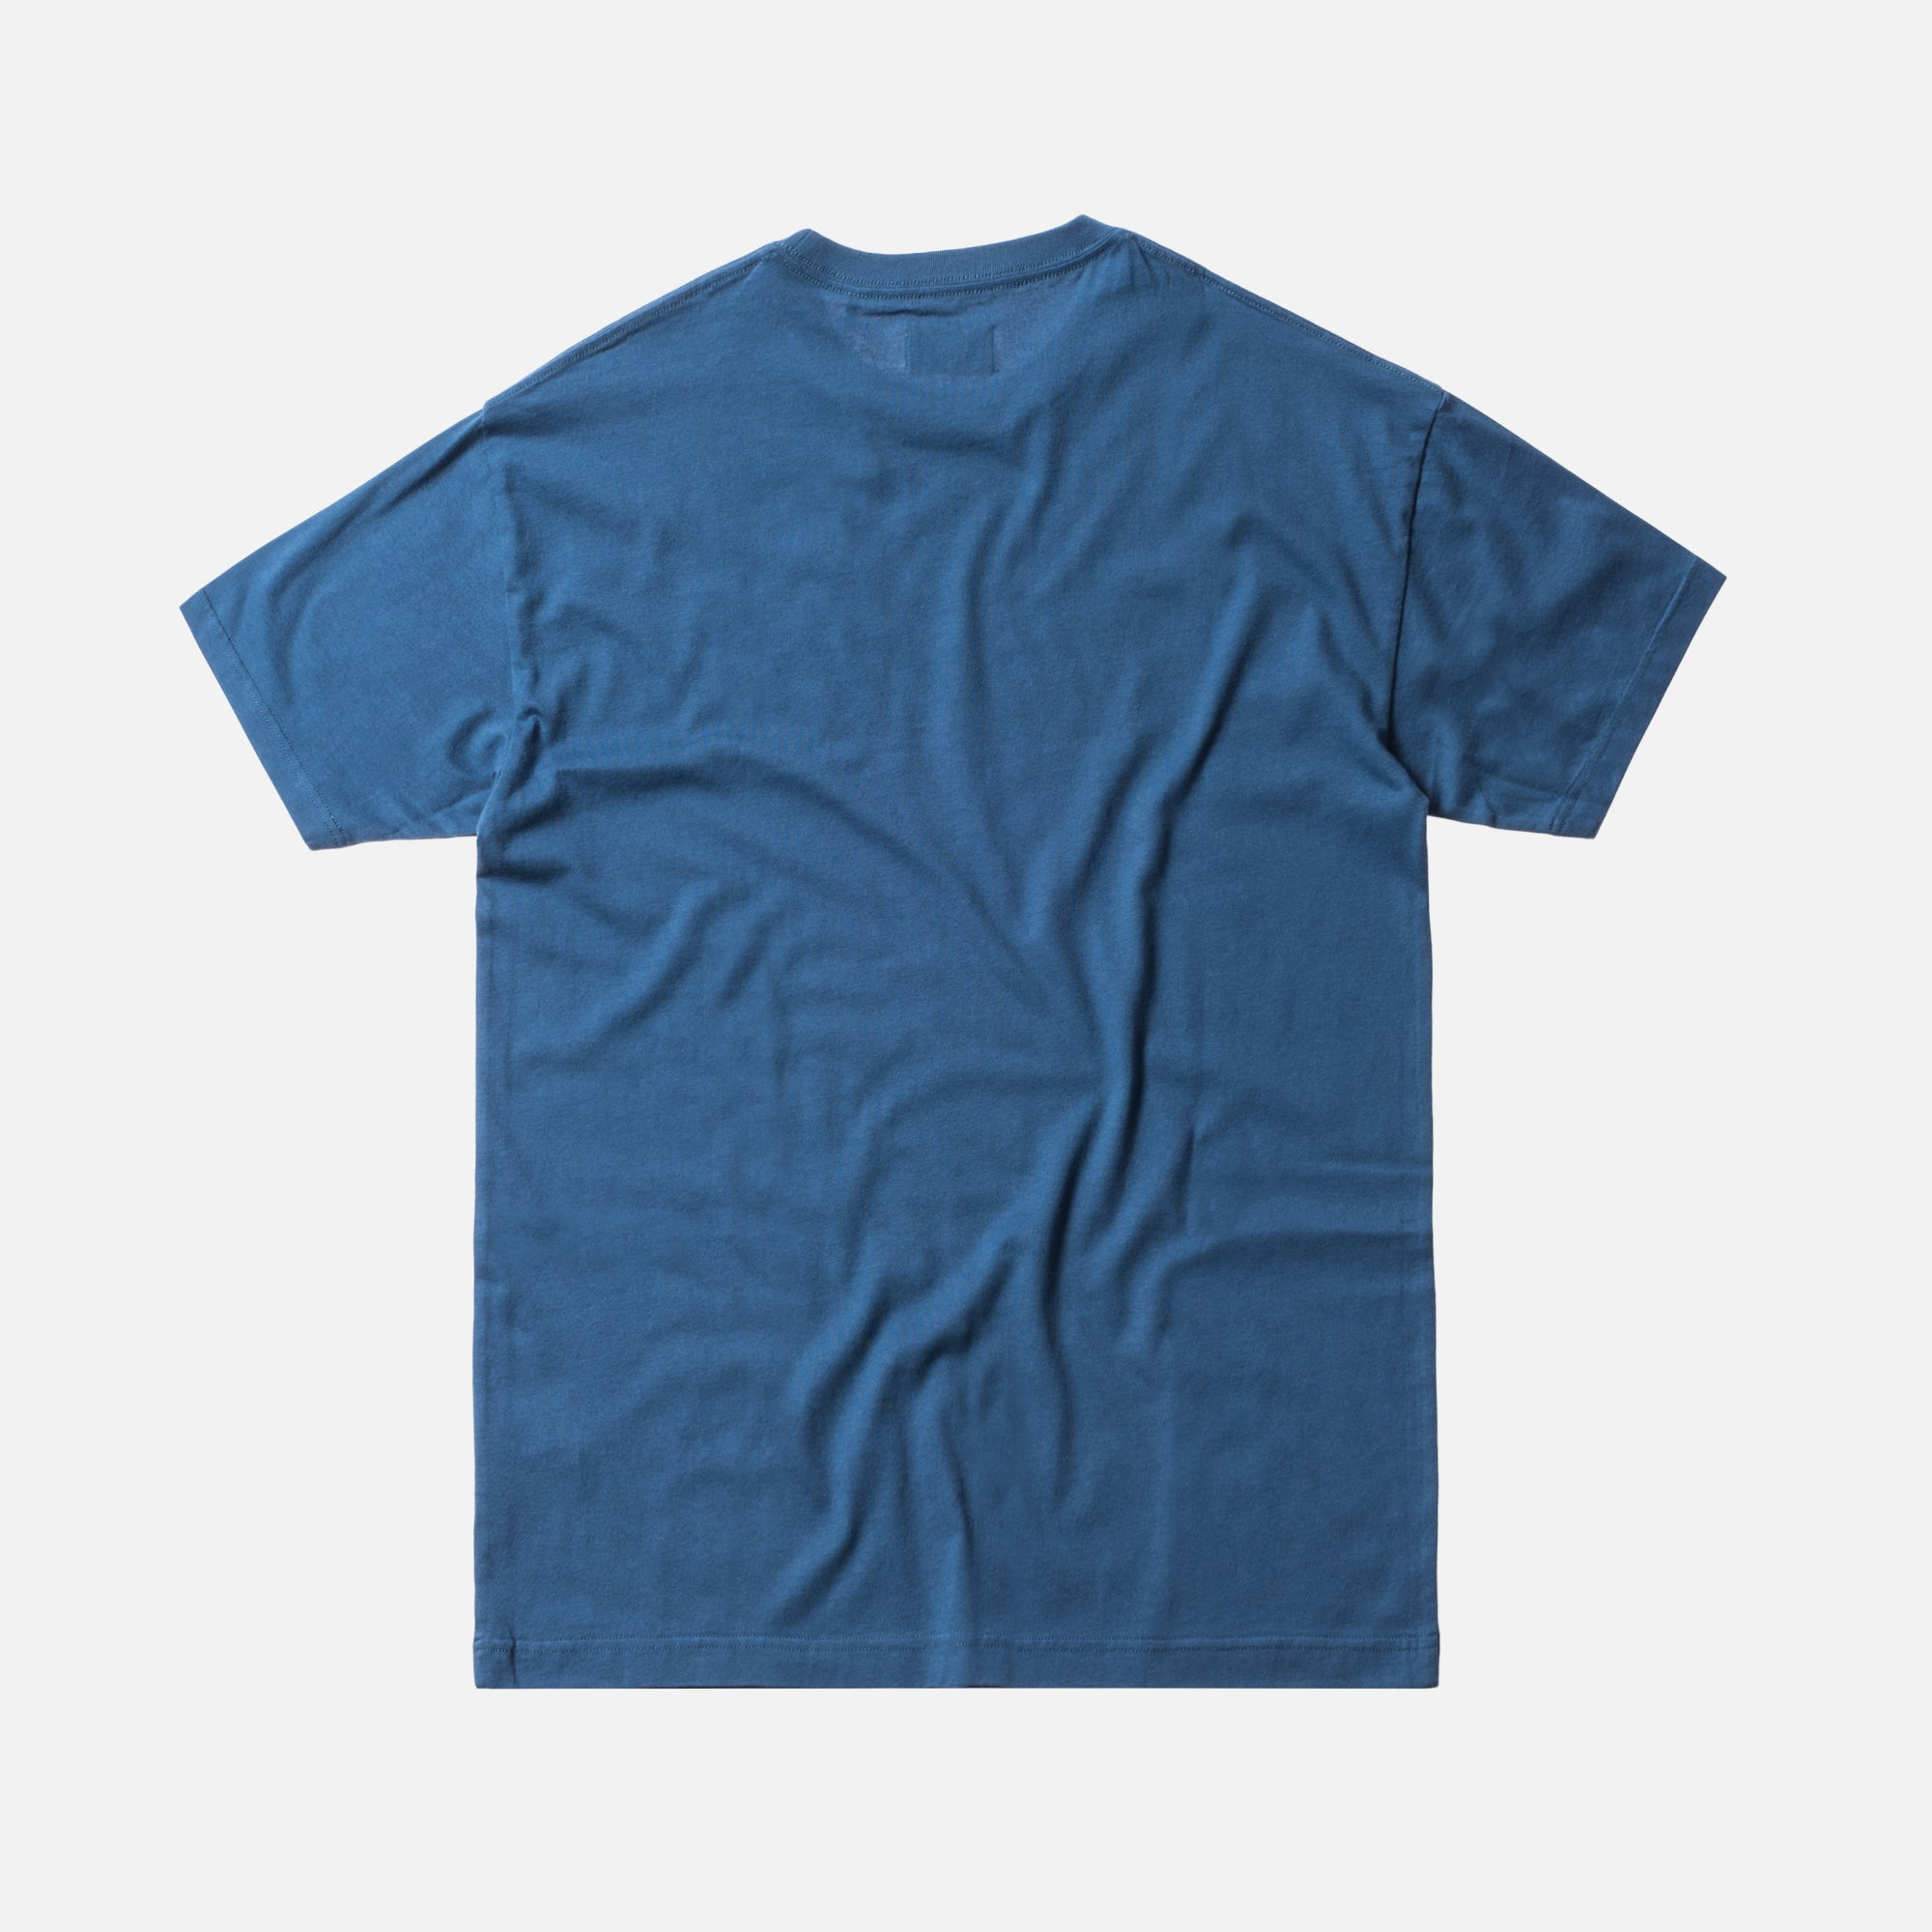 Kith Treats Tee - Blue